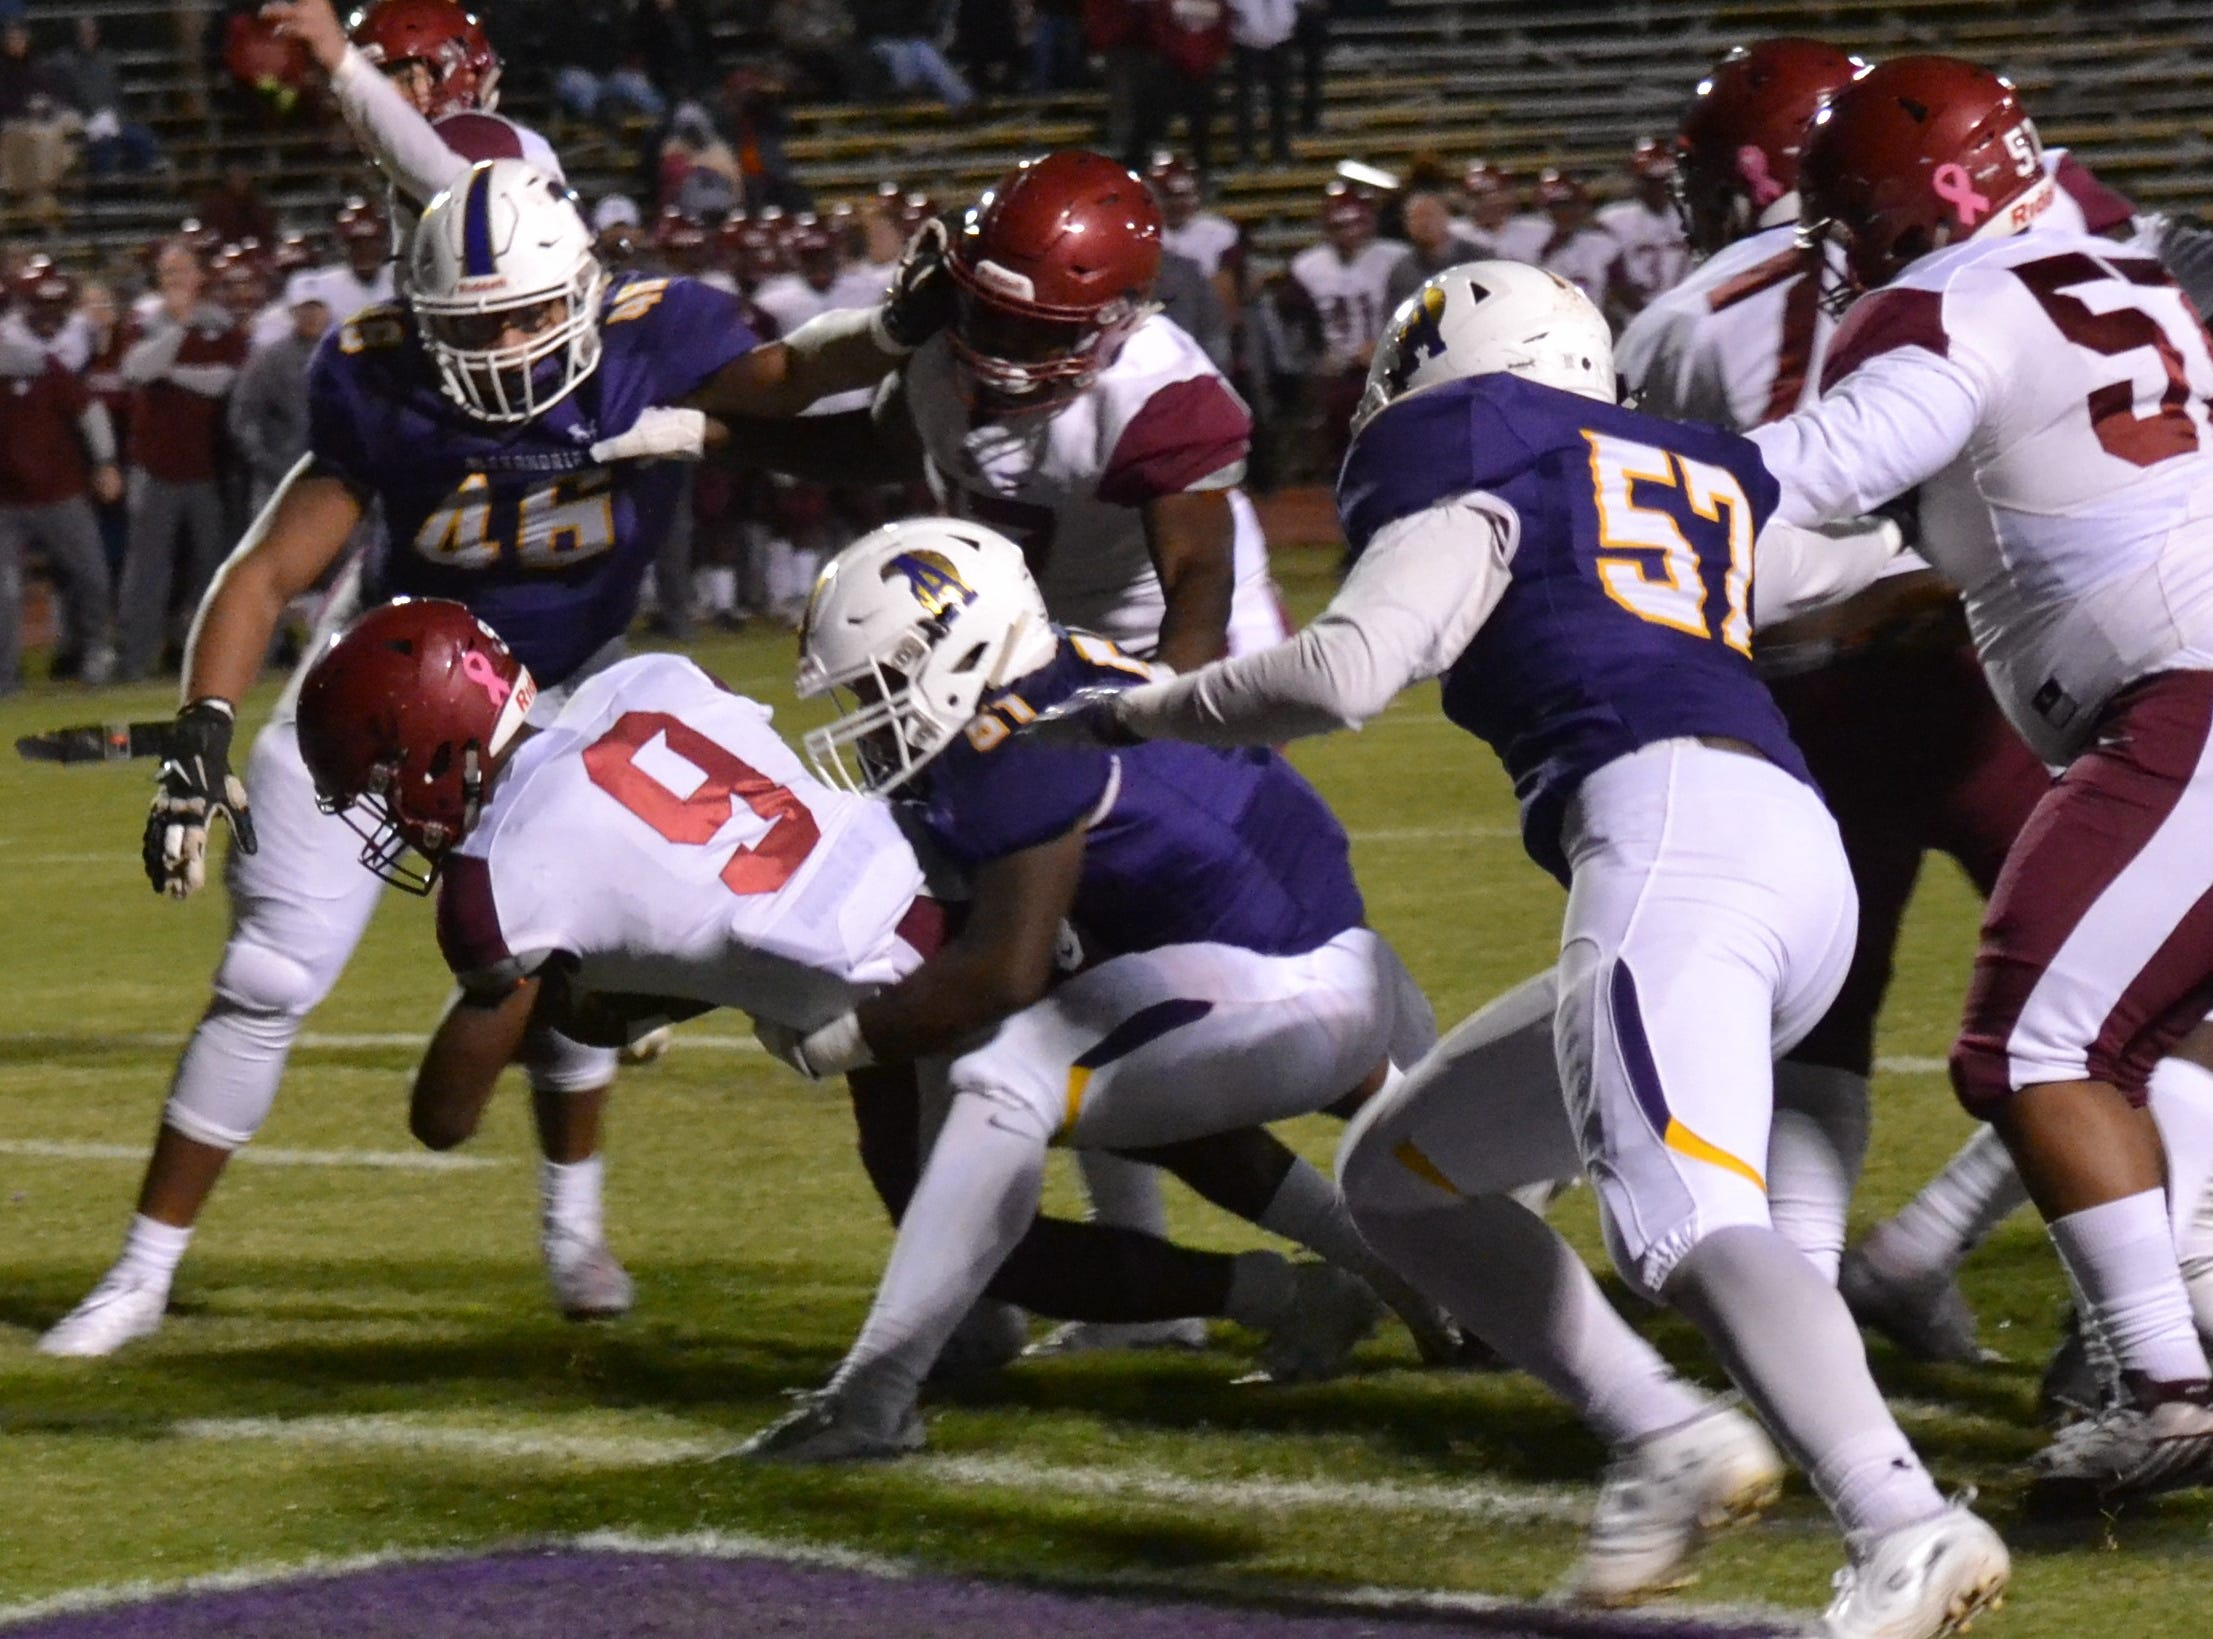 Ouachita Lion running back Dylan Roberts stretches for the goal line and scores the game's first touchdown. The ASH Trojans fell to the Ouachita Parish Lions 42-20 Thursday, Nov. 1, at Alexandria Senior High.